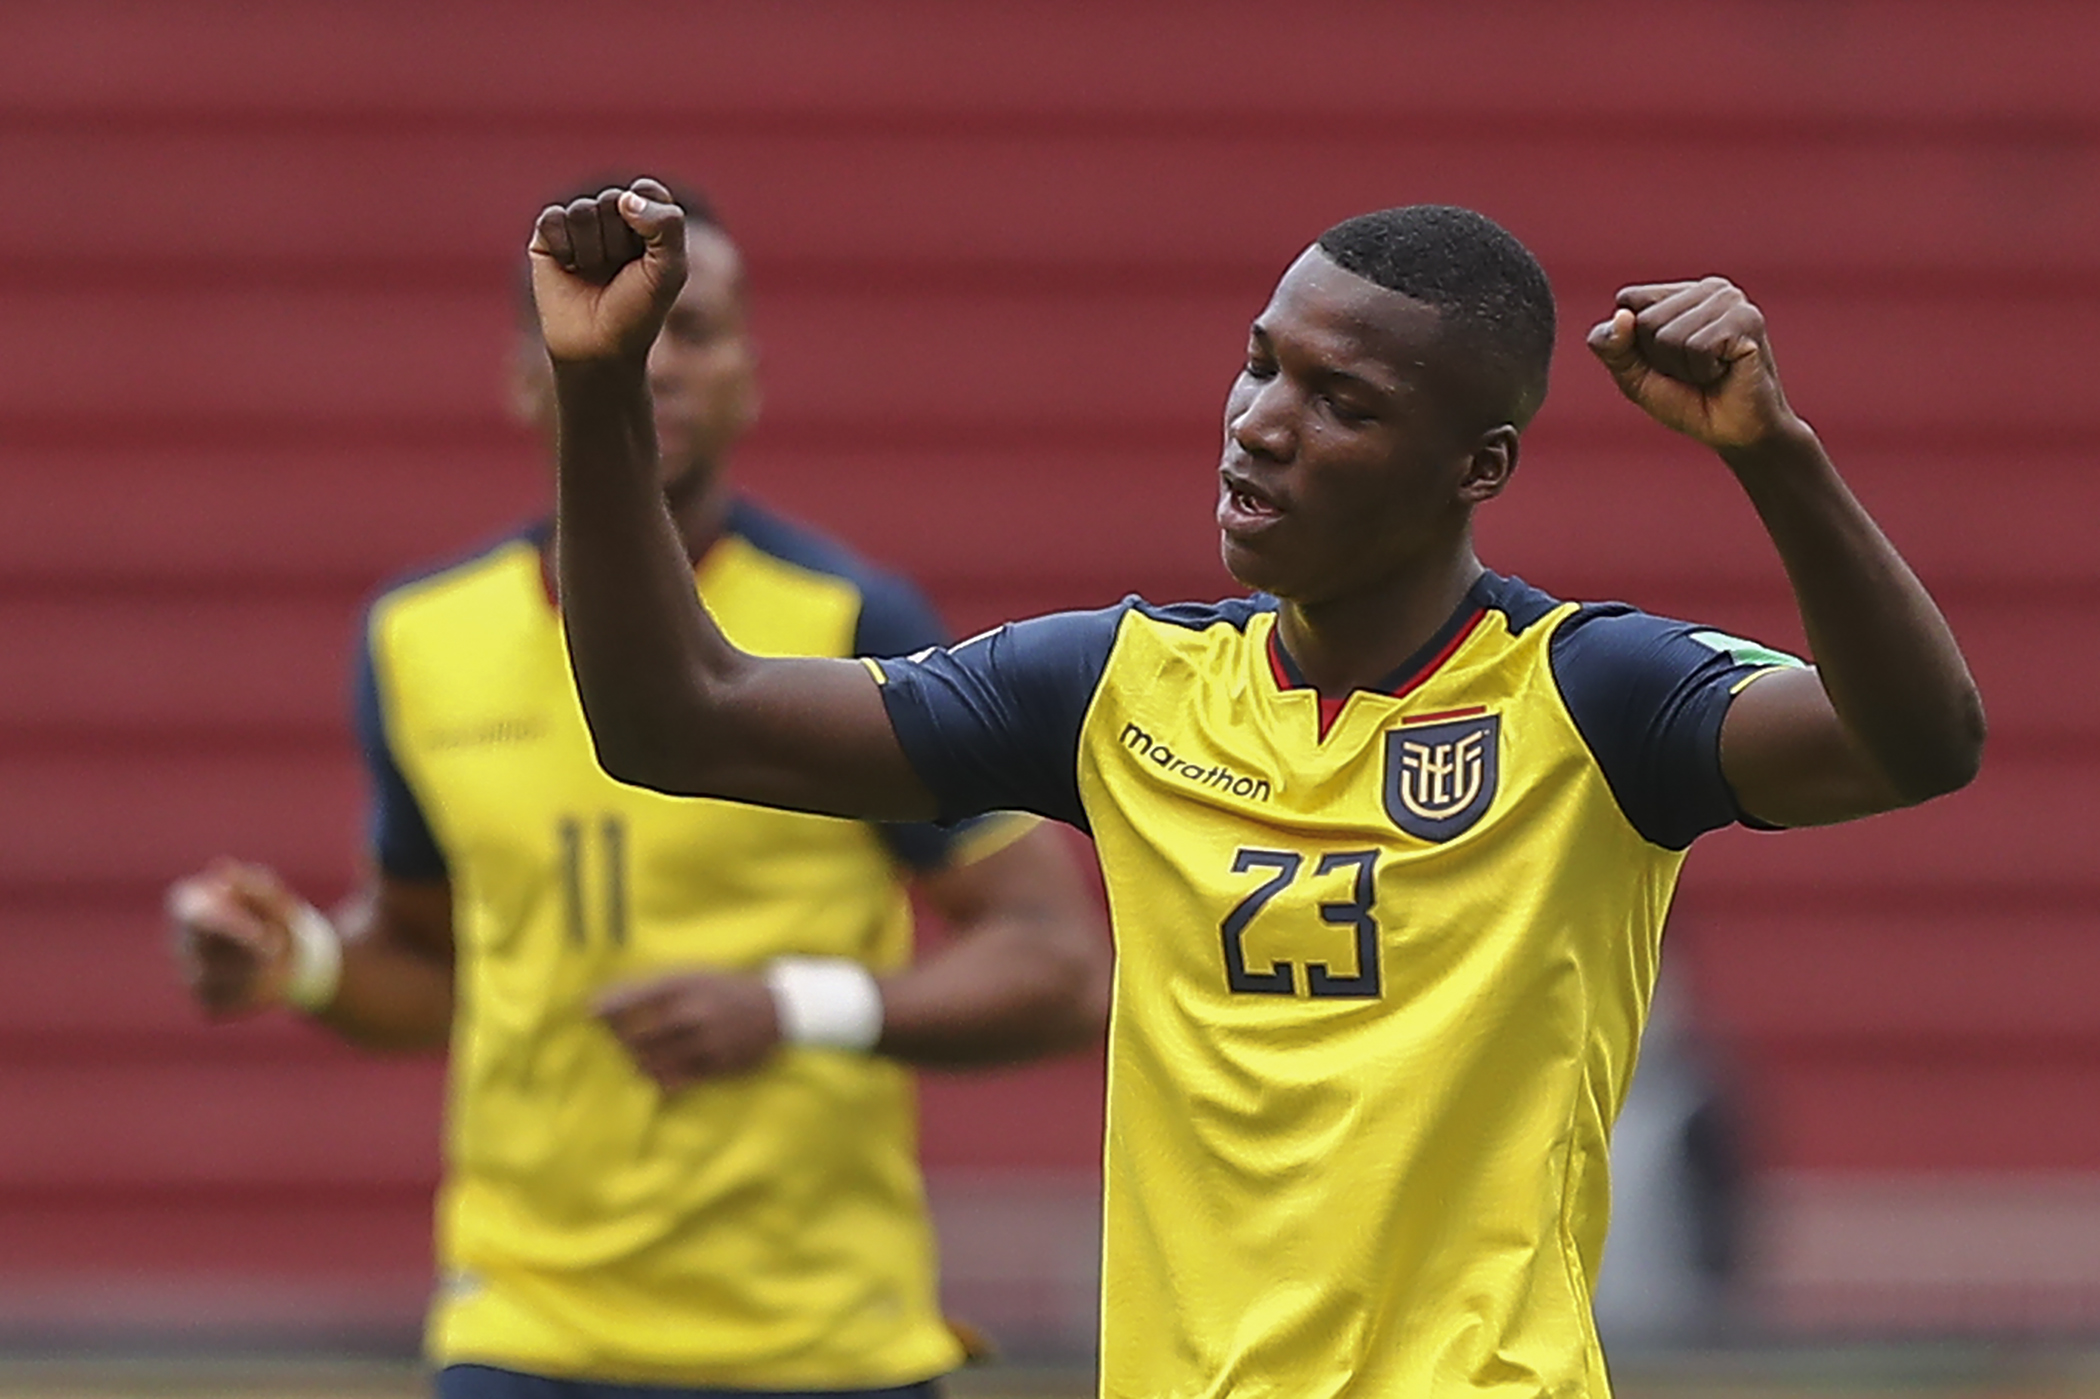 Chelsea have shown interest in signing 19-year-old midfielder Moises Caicedo. (GETTY Images)